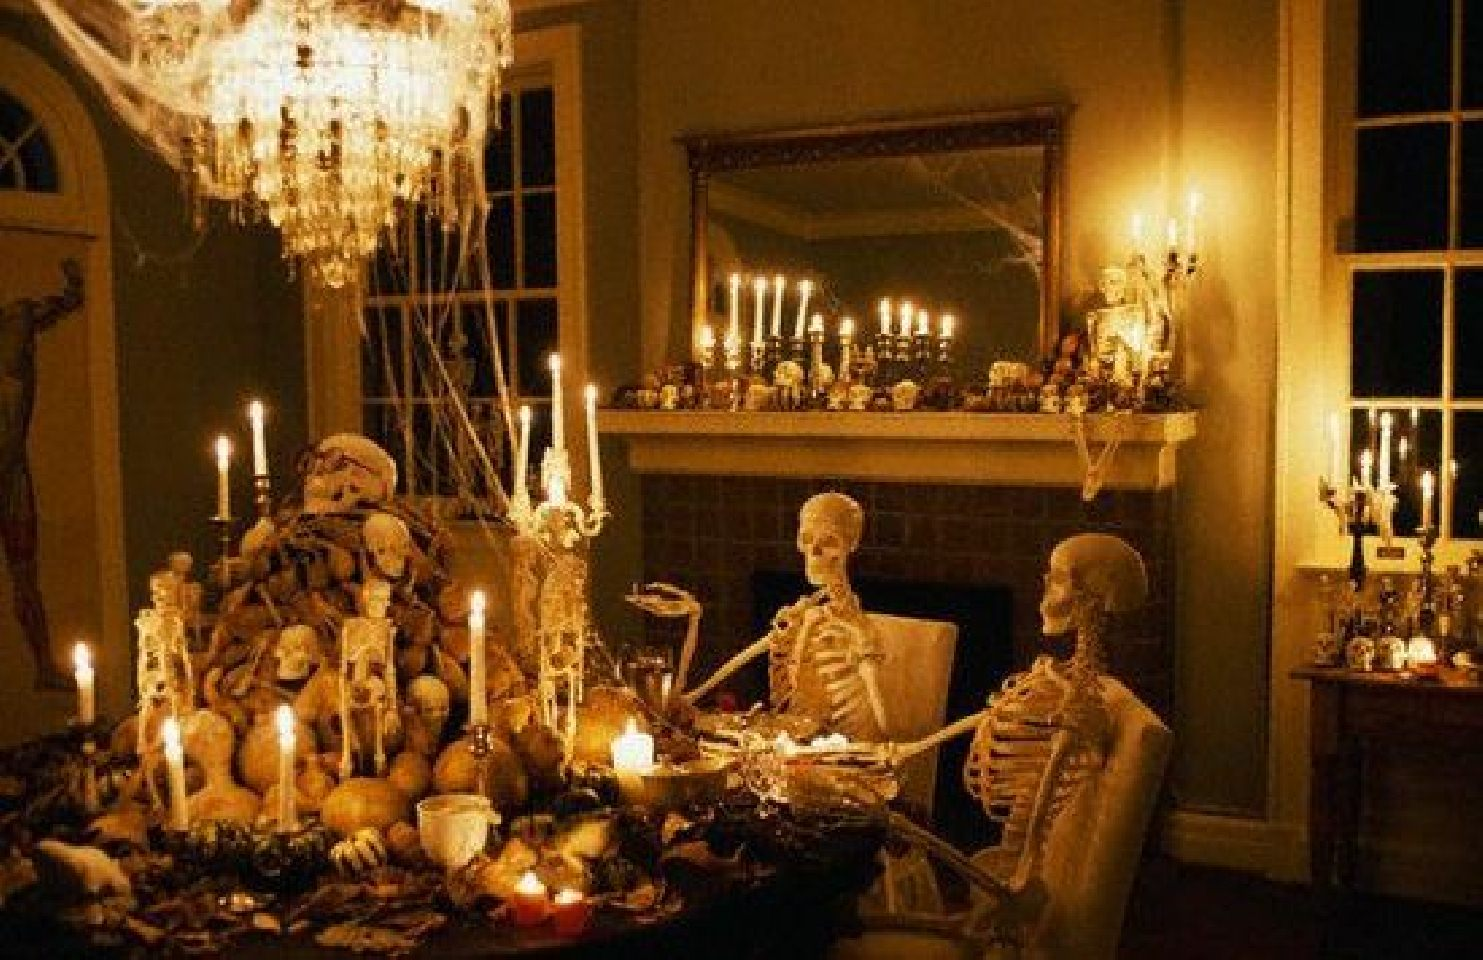 House Decoration Ideas 2017 For Halloween Party & Lighting Décor Halloween Party Ideas